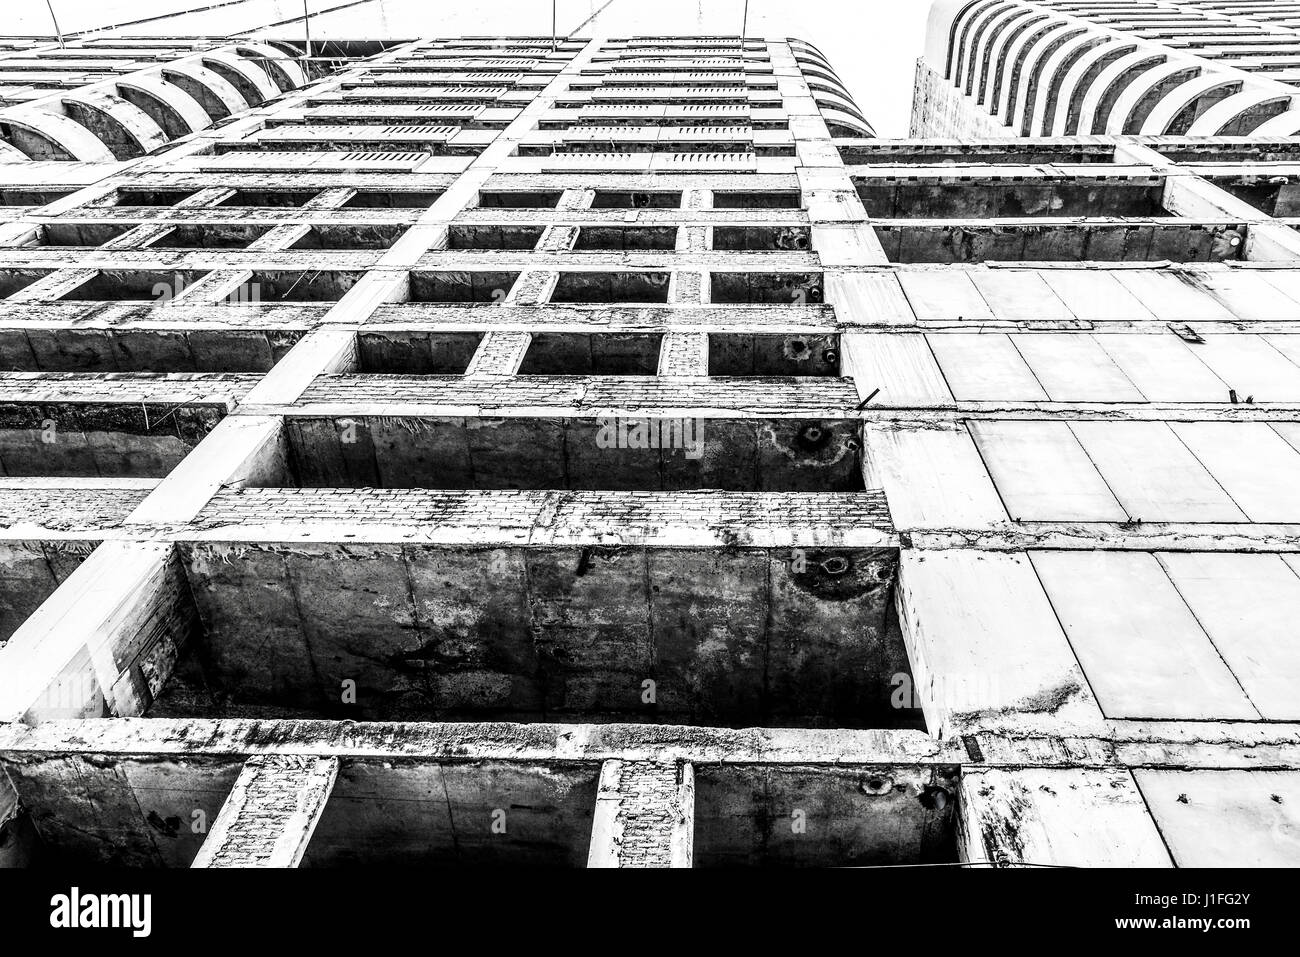 Old abandoned building. Horror creepy building background concept - Stock Image